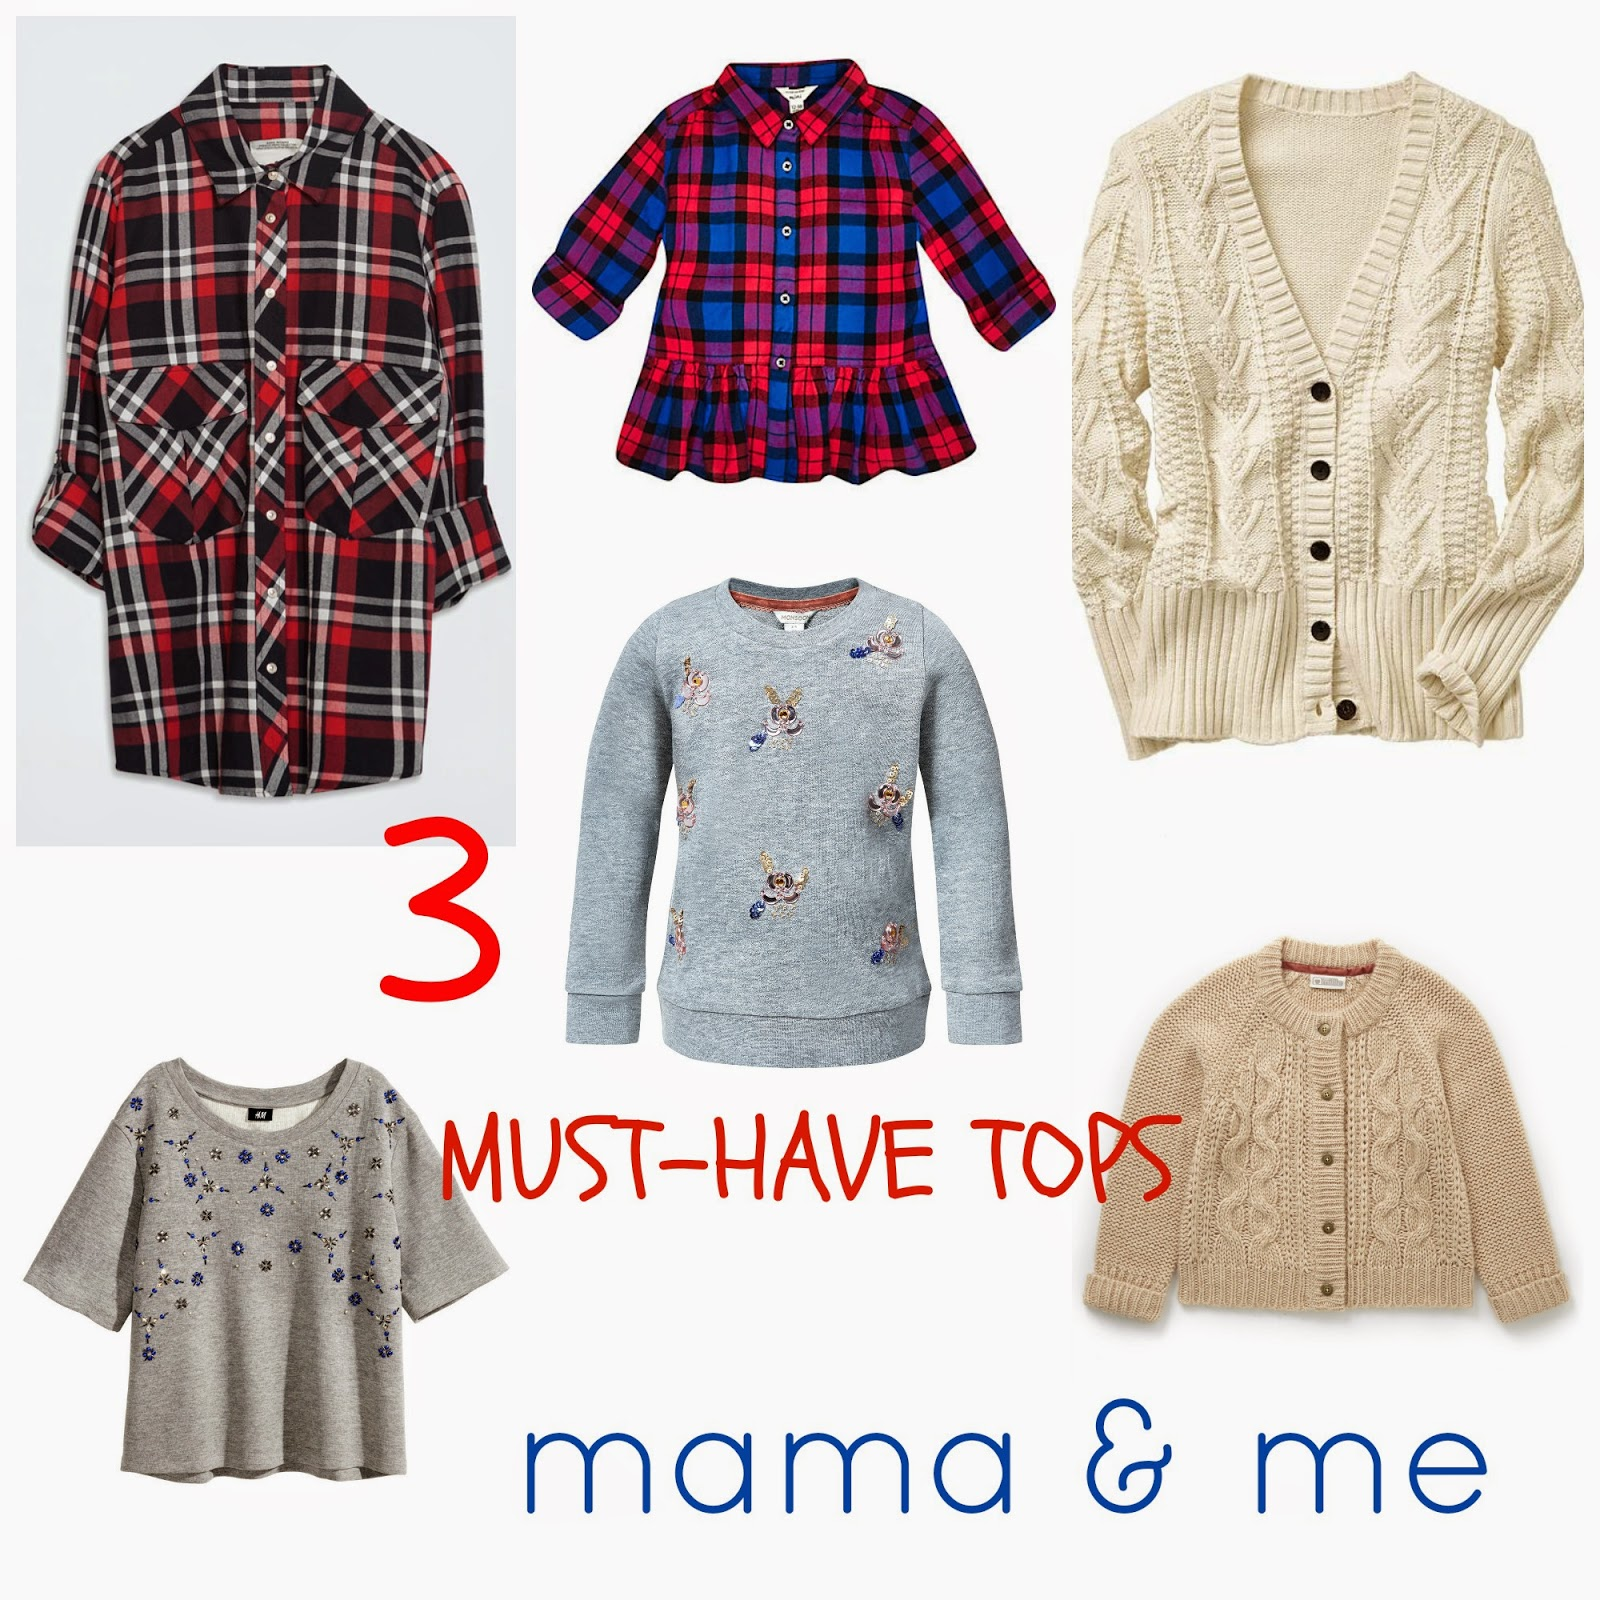 The 3 must-have tops for easy - and stylish Mama & Me days | mama and me style | mama fashion | urls fashion | river island mini | mango | zara | jewelled sweaters | checked shirt | zara | easy chic | school run style | leather leggings | zara mini | marks & Spencer | gap | cable cardigan | style | mamasVIB | fashion editor picks | stylish mums | mum and mini style | office | house of fraser | amma and girl style | mamas vin | blog | fashion | news | fashion trends | mamasVIB